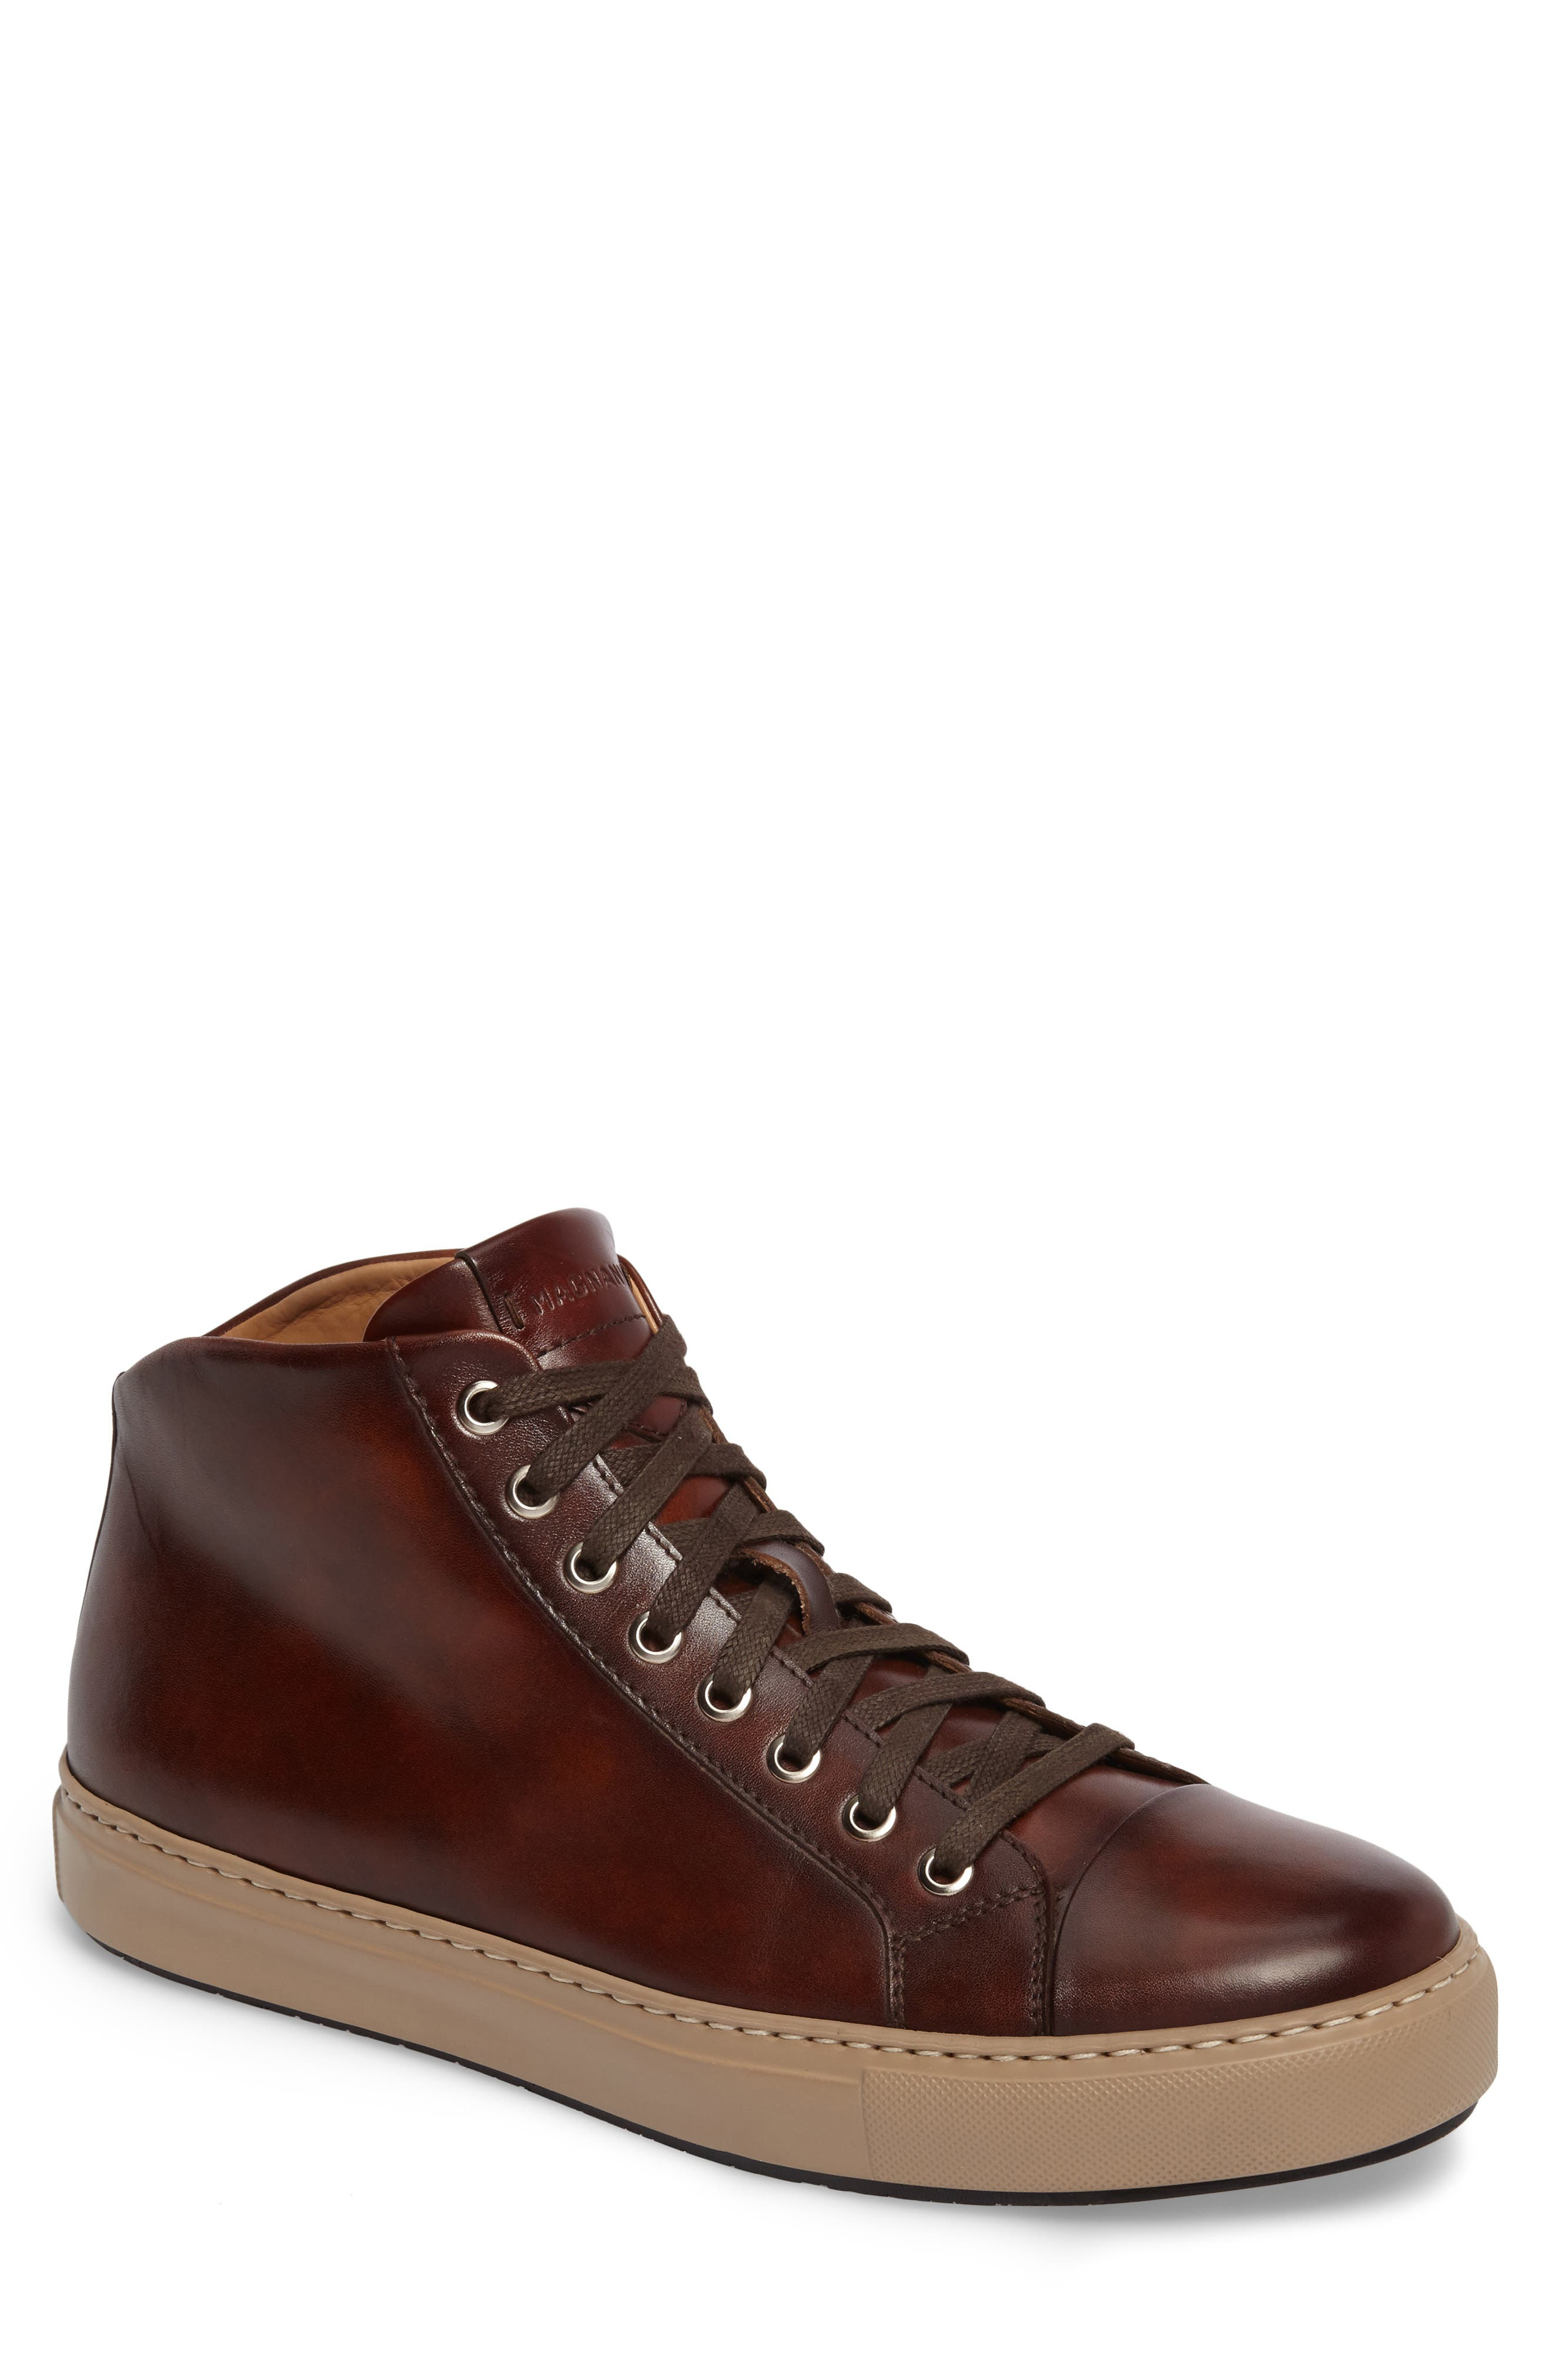 Kavon High Top Sneaker,                         Main,                         color, 245